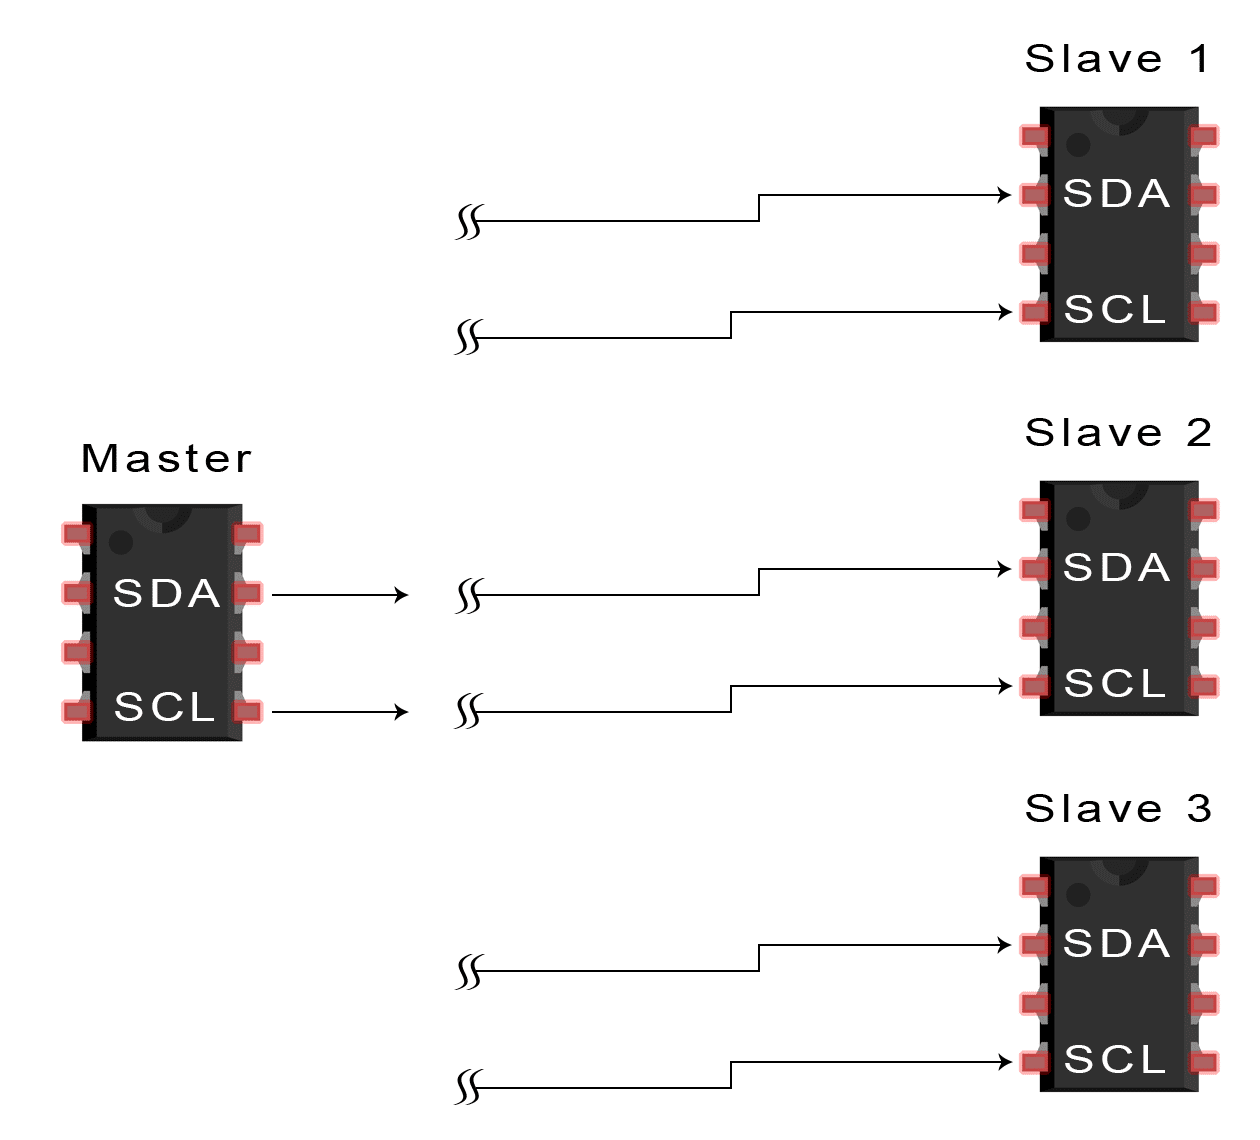 Basics Of The I2c Communication Protocol Wiring Diagramsfor Both Types Transfer Casesand Your Transmission Master Sends Start Condition To Every Connected Slave By Switching Sda Line From A High Voltage Level Low Before